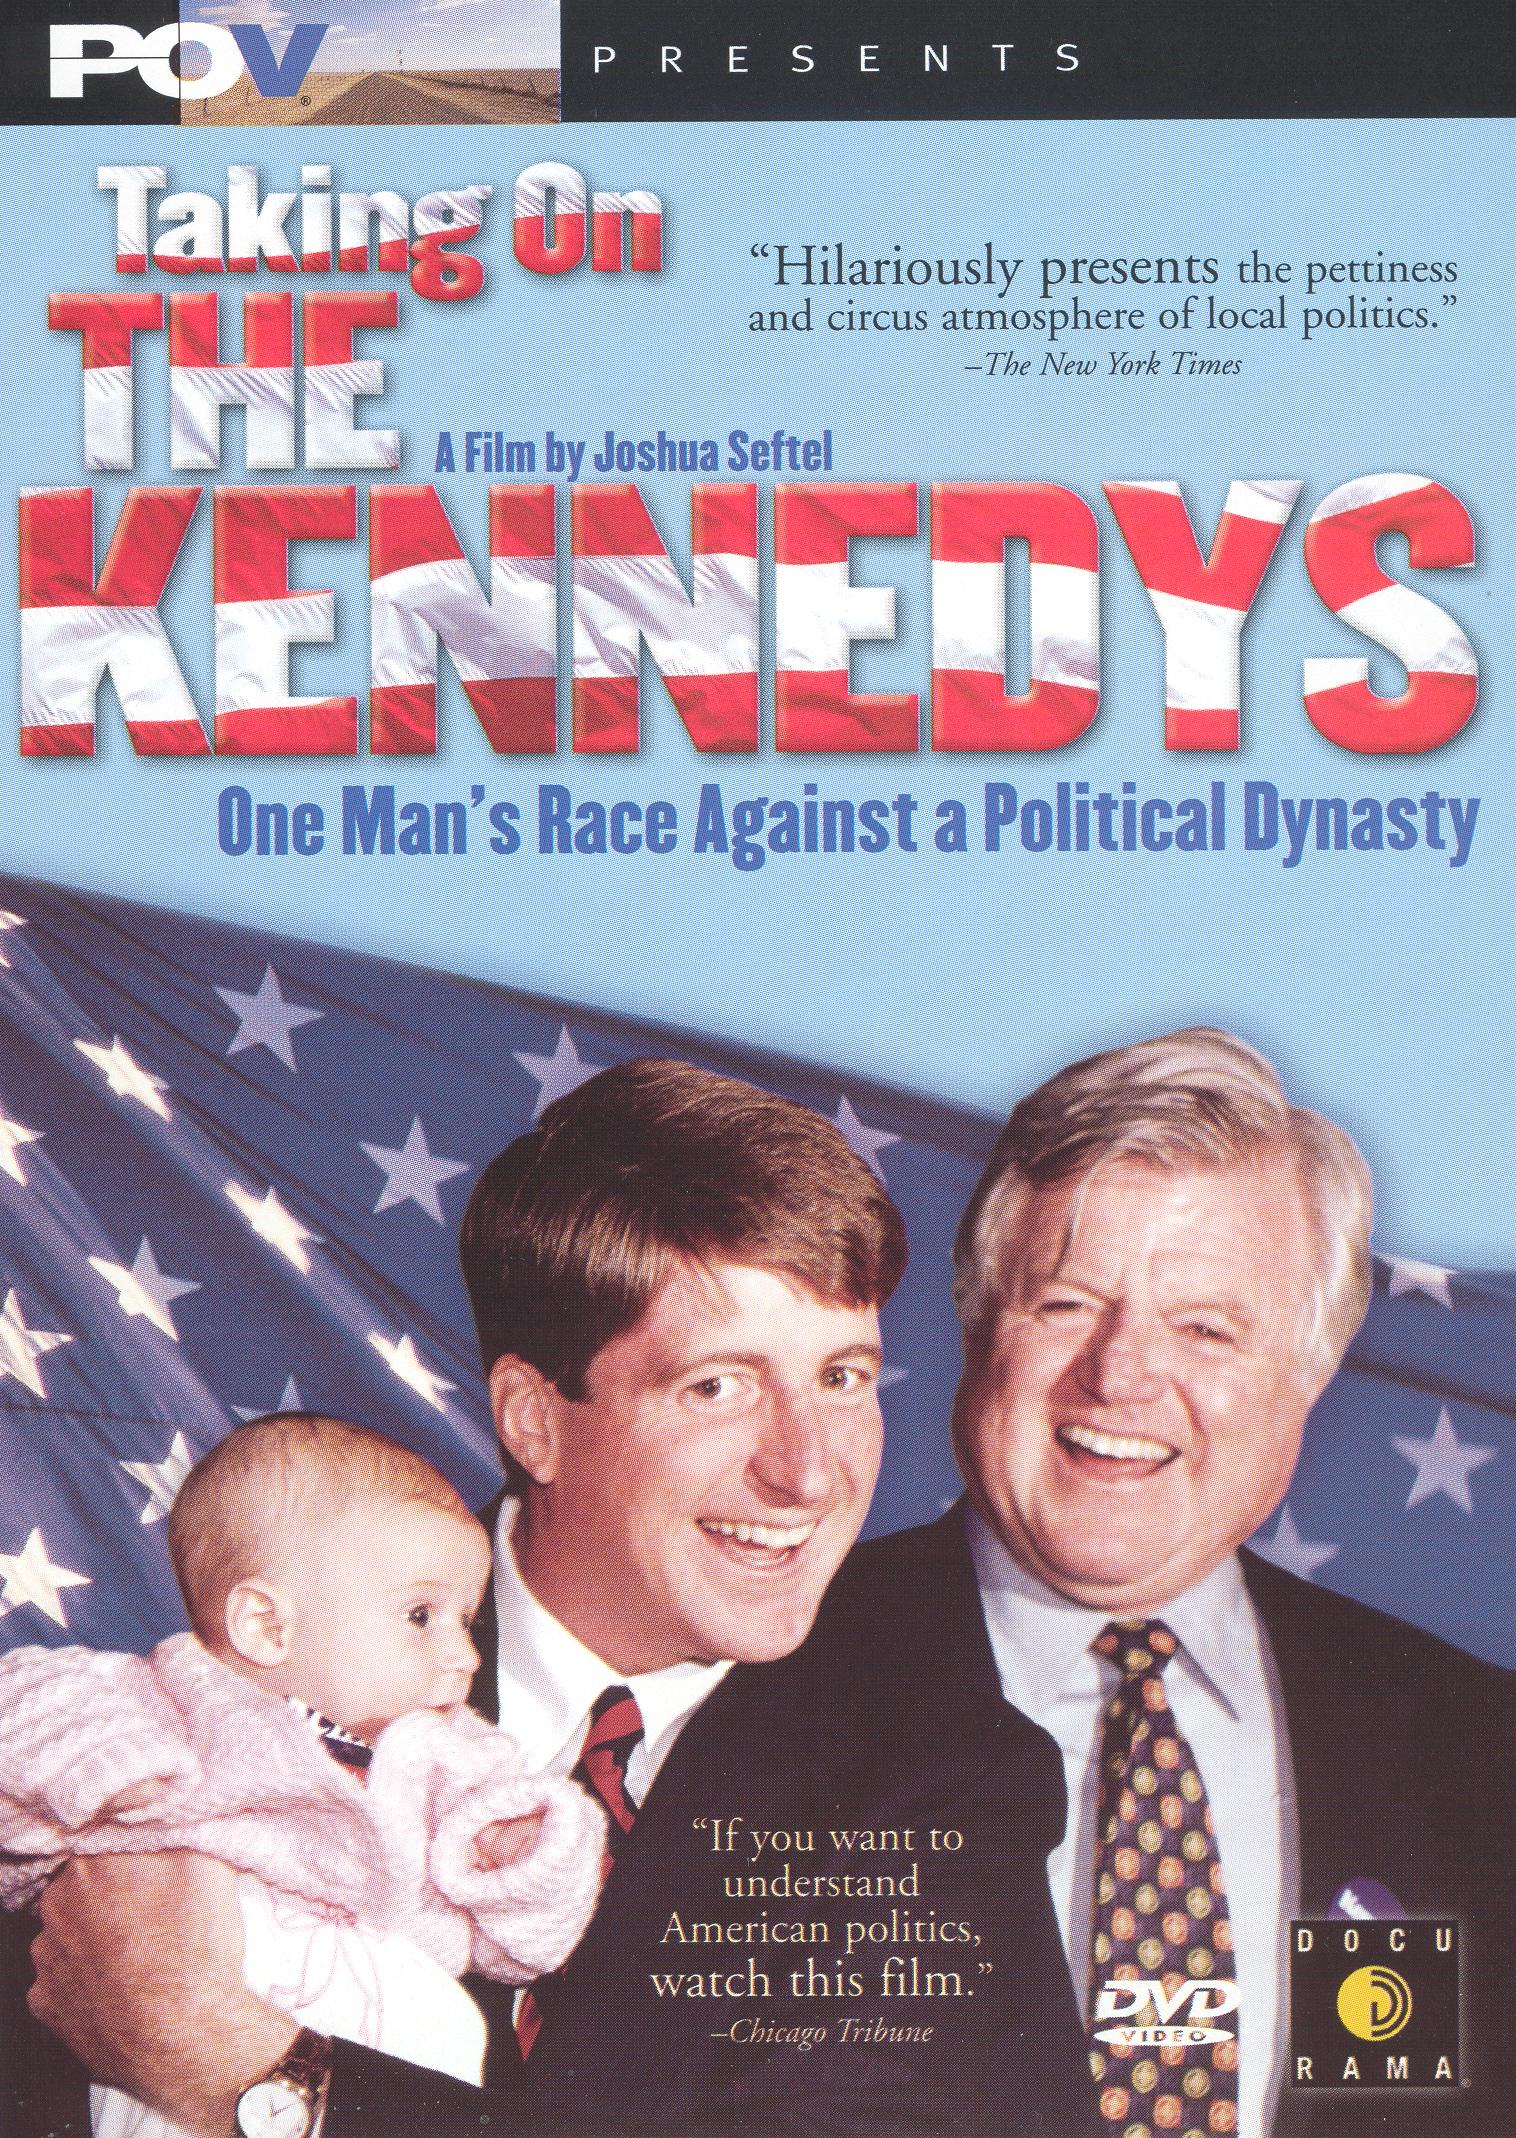 Taking On the Kennedys